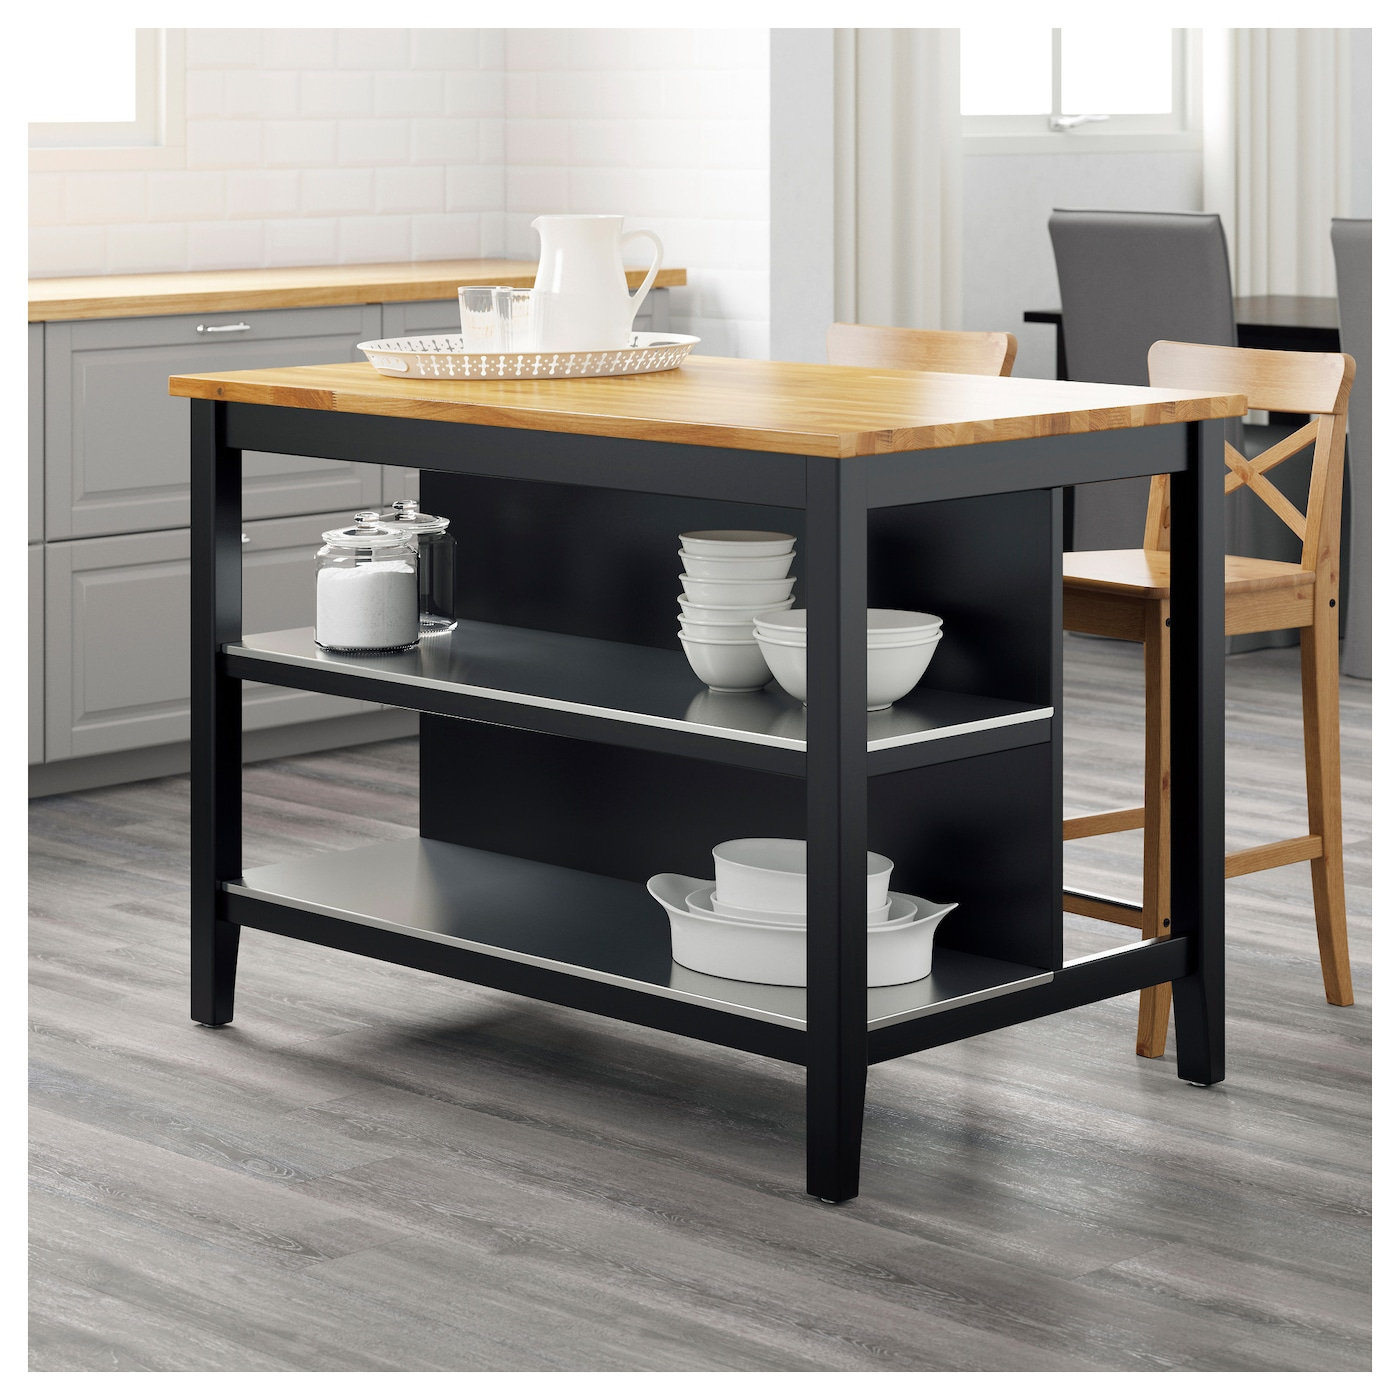 Stenstorp Kitchen Island Black Brown Oak 126 X 79 Cm Ikea